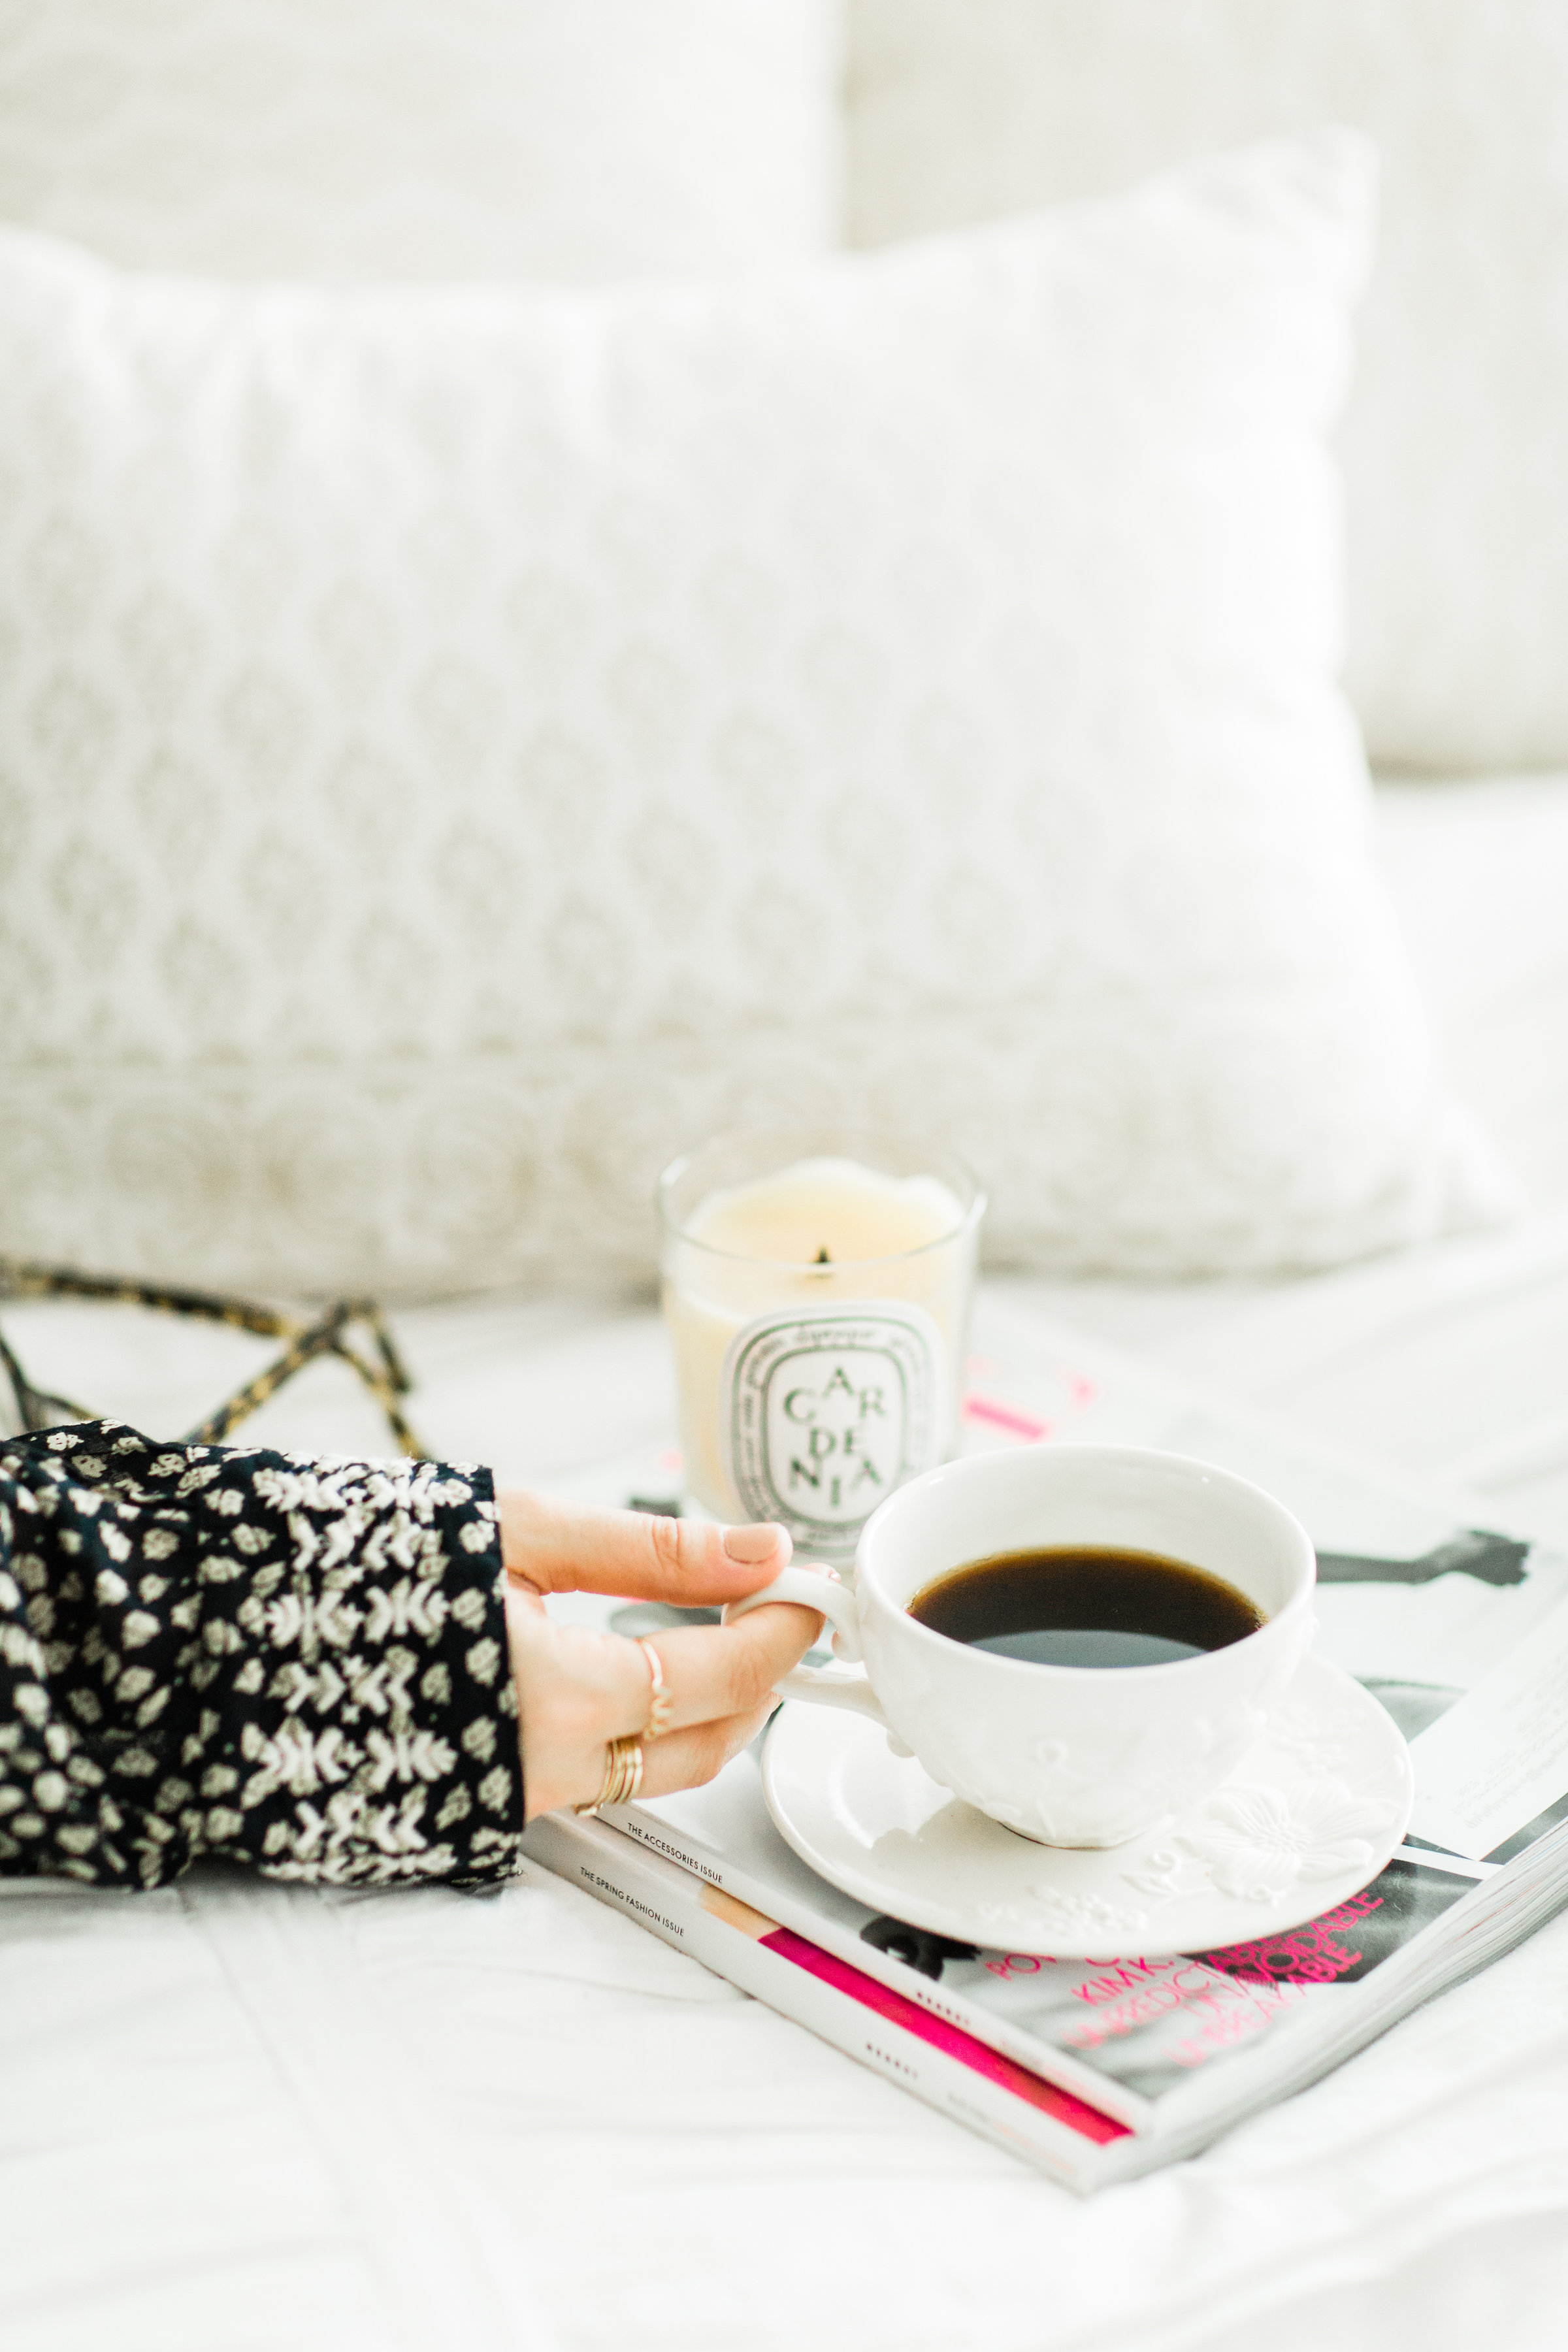 Lifestyle blogger Lexi of Glitter, Inc. shares a few little love notes to the things she loved most this week, coffee in bed, plus fun weekend plans. #coffee #bedroom #flatlay #fashionblogger | glitterinc.com | @glitterinc